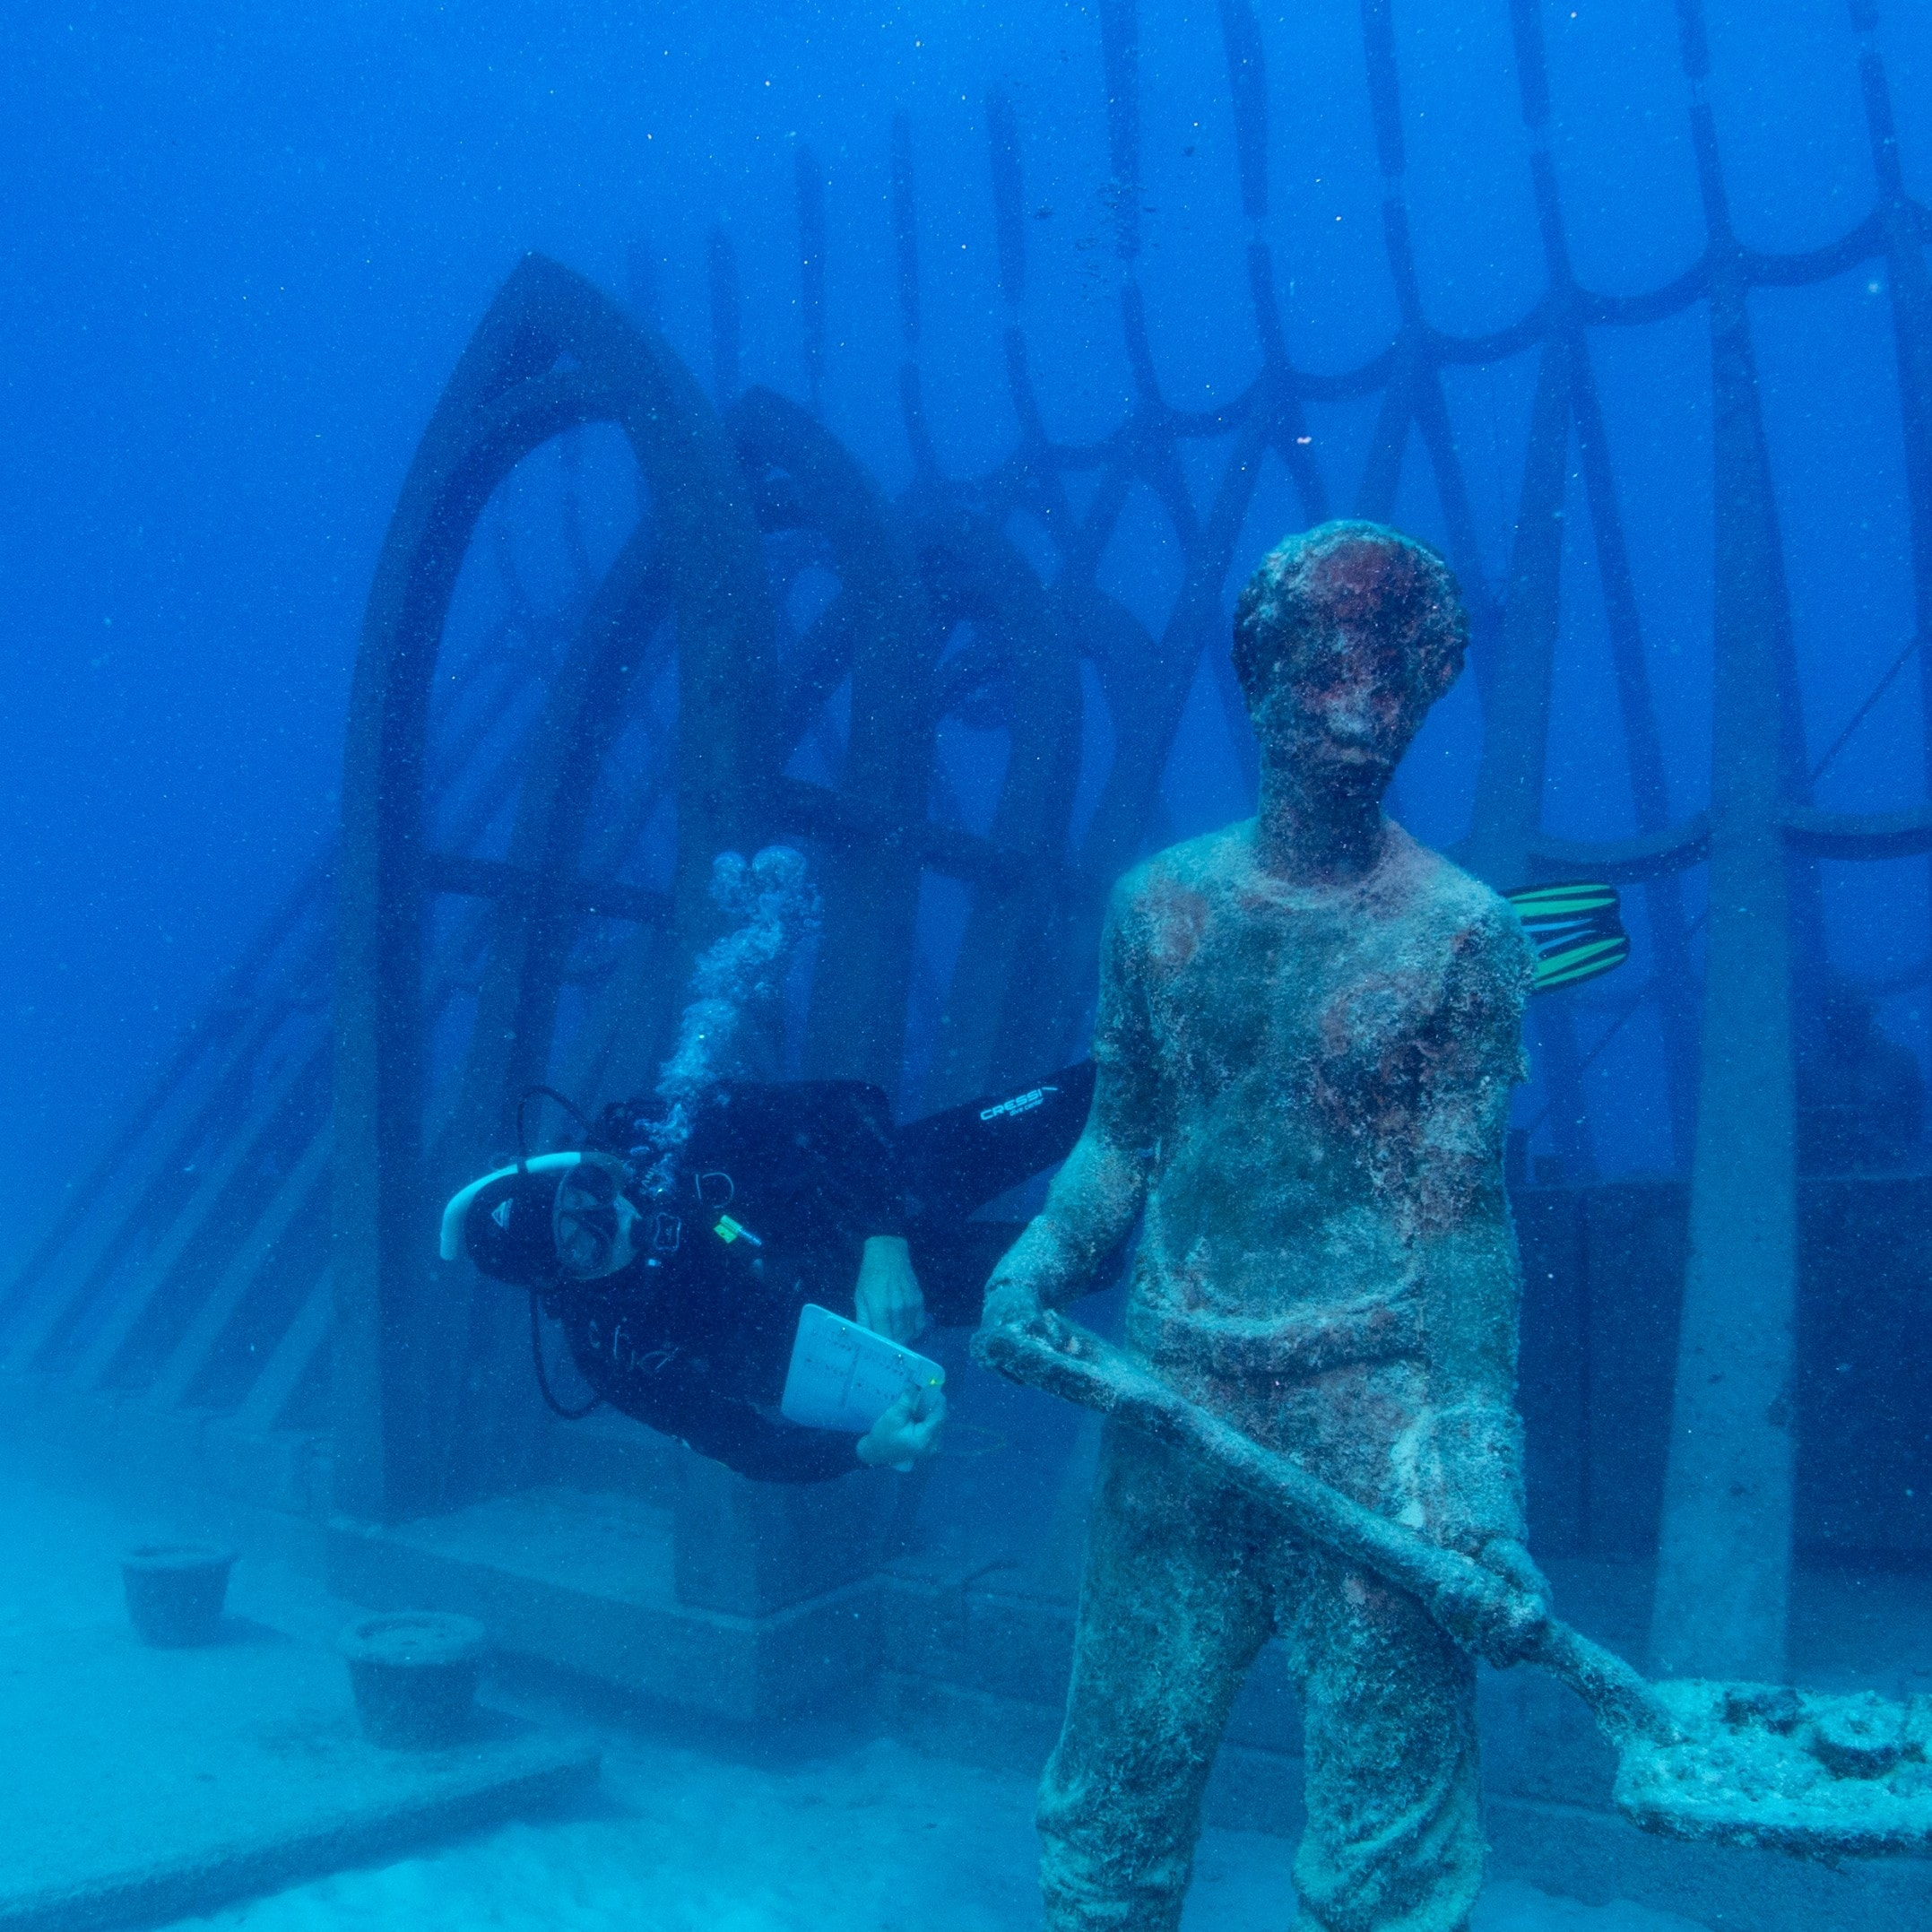 Scuba diver swims next to an exhibit at the Museum of Underwater Art in Townsville © Gemma Molinaro Photography